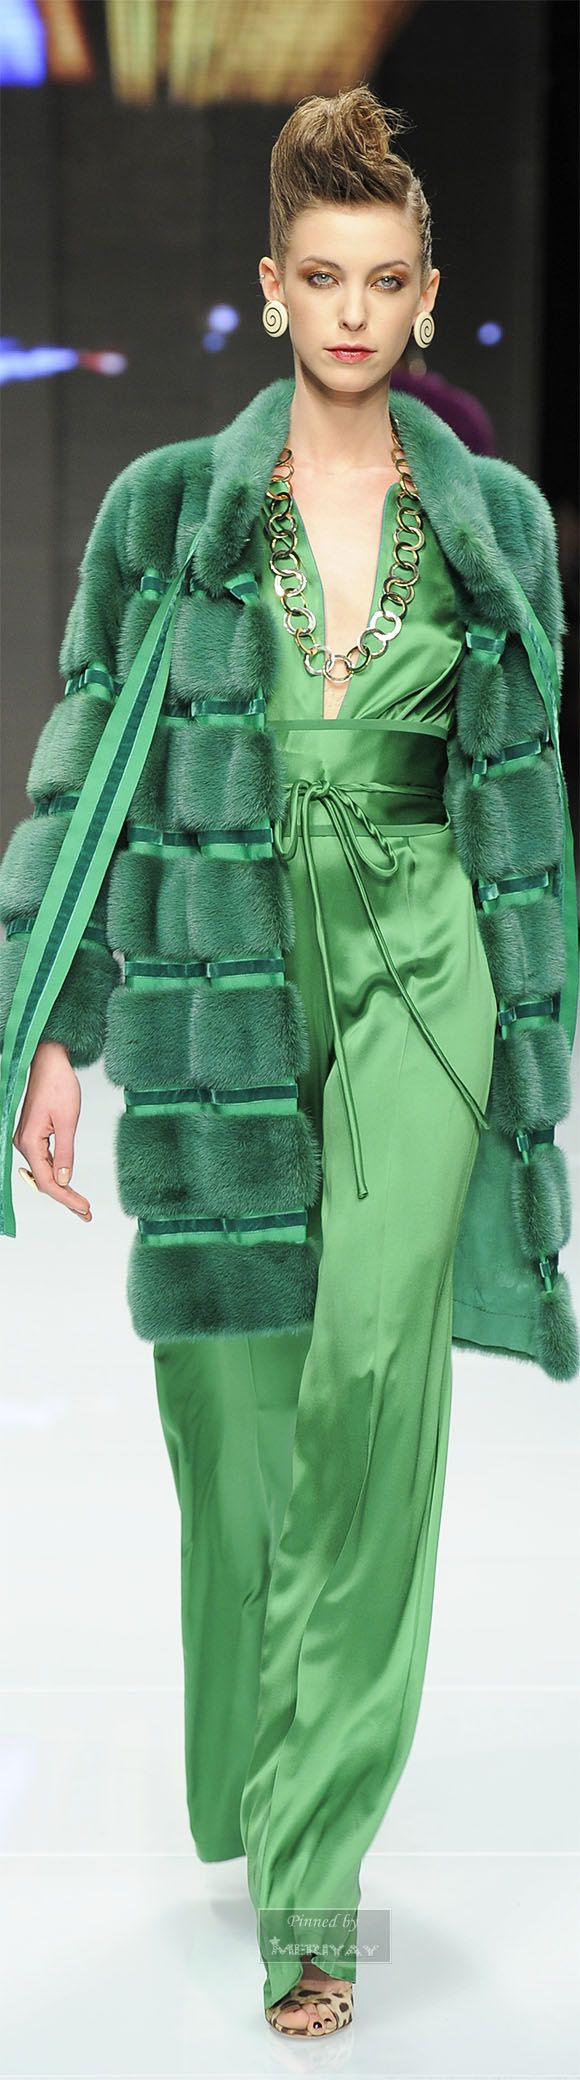 Green lipstick: manifested and fashionable green ideas